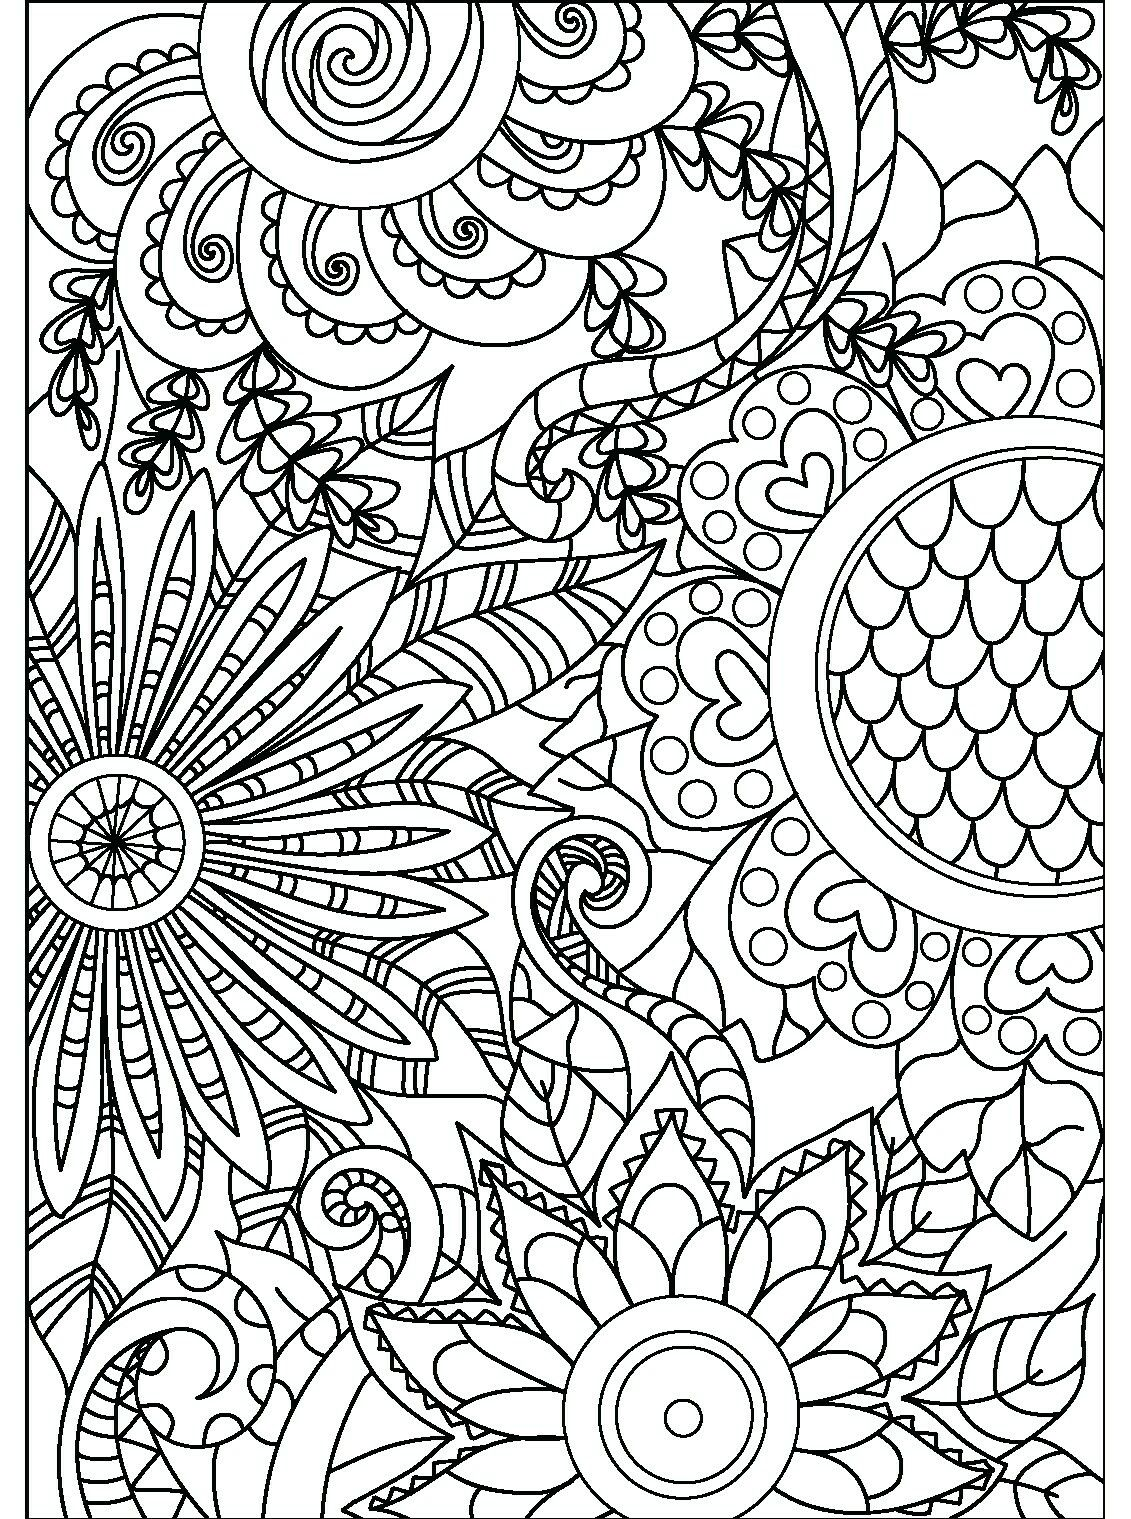 Colouring for adults | Coloring books, Fantastic cities coloring book, Coloring  pages